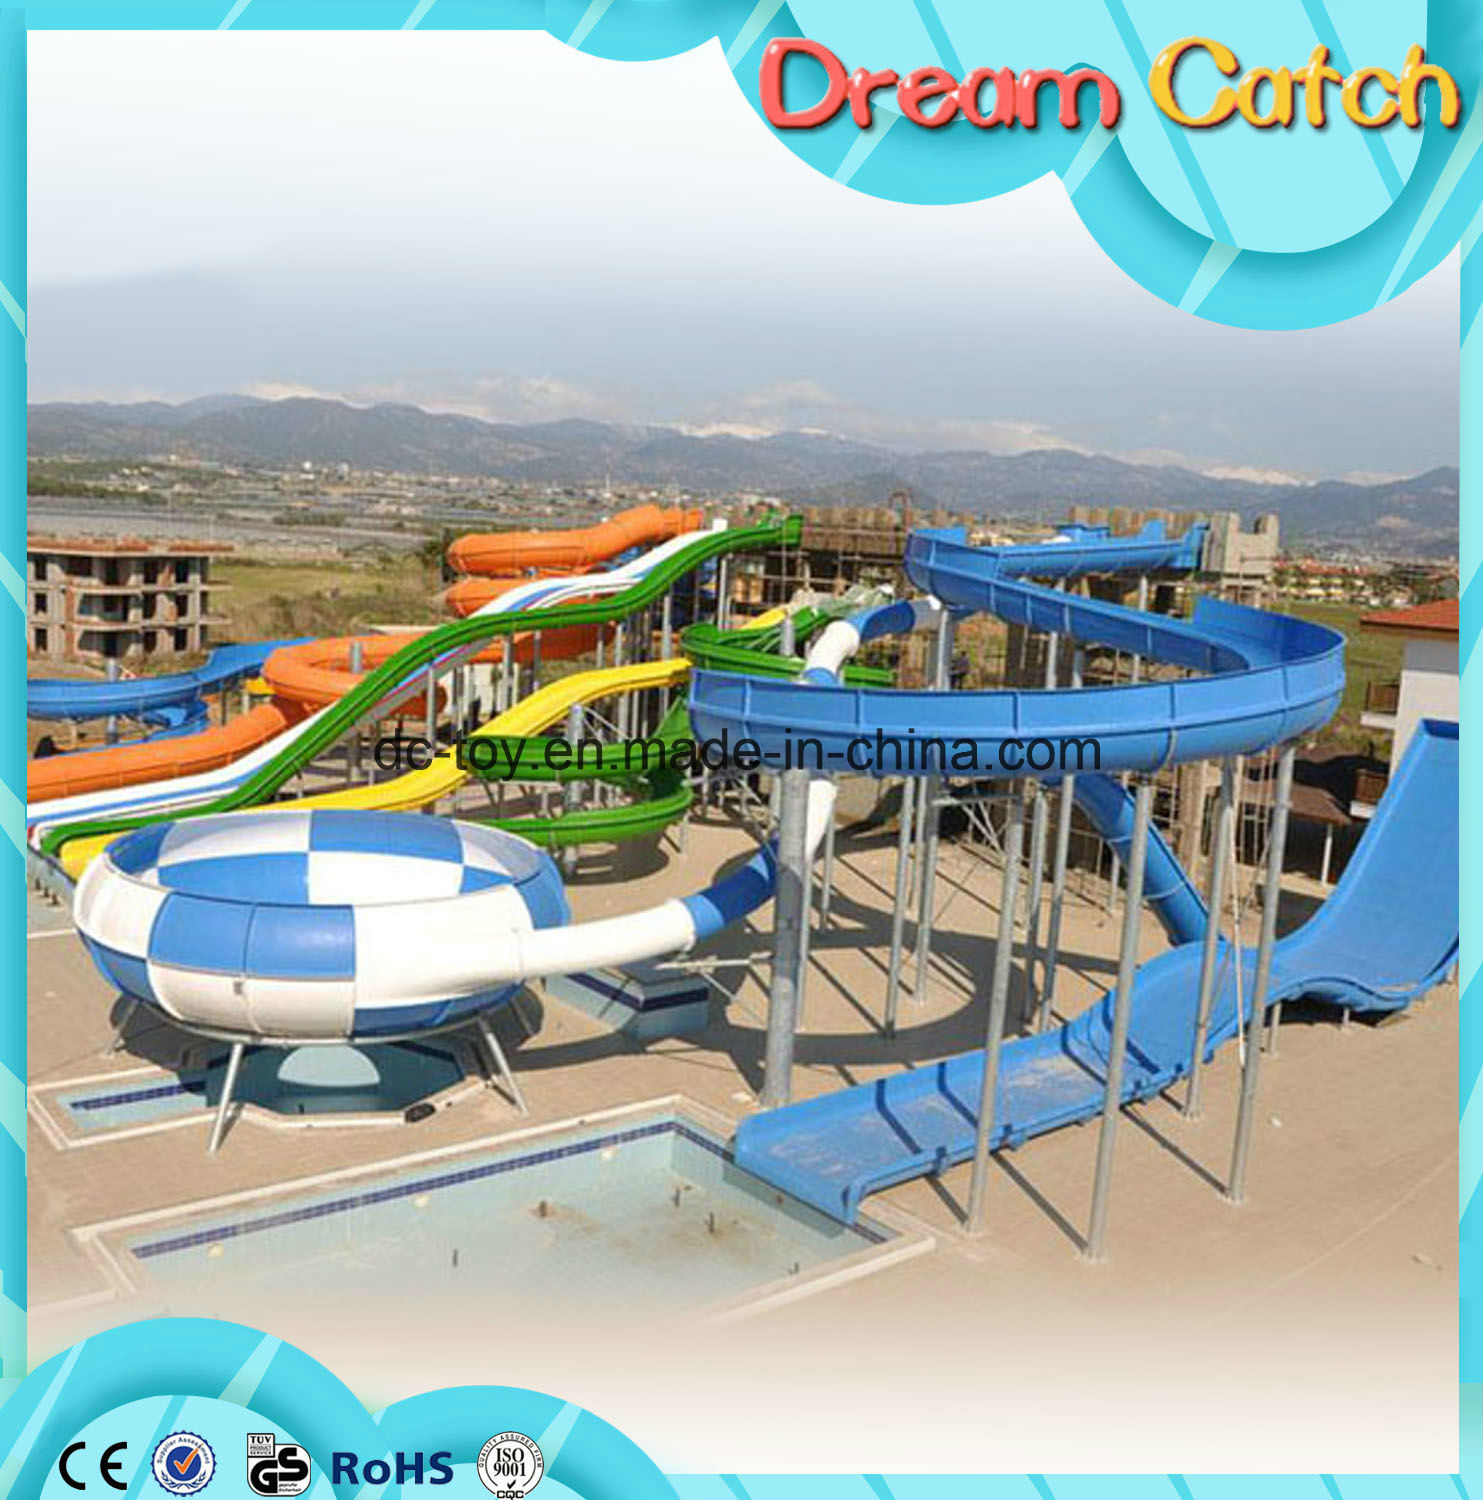 Outdoor Playground Water Park Slides for Sale pictures & photos